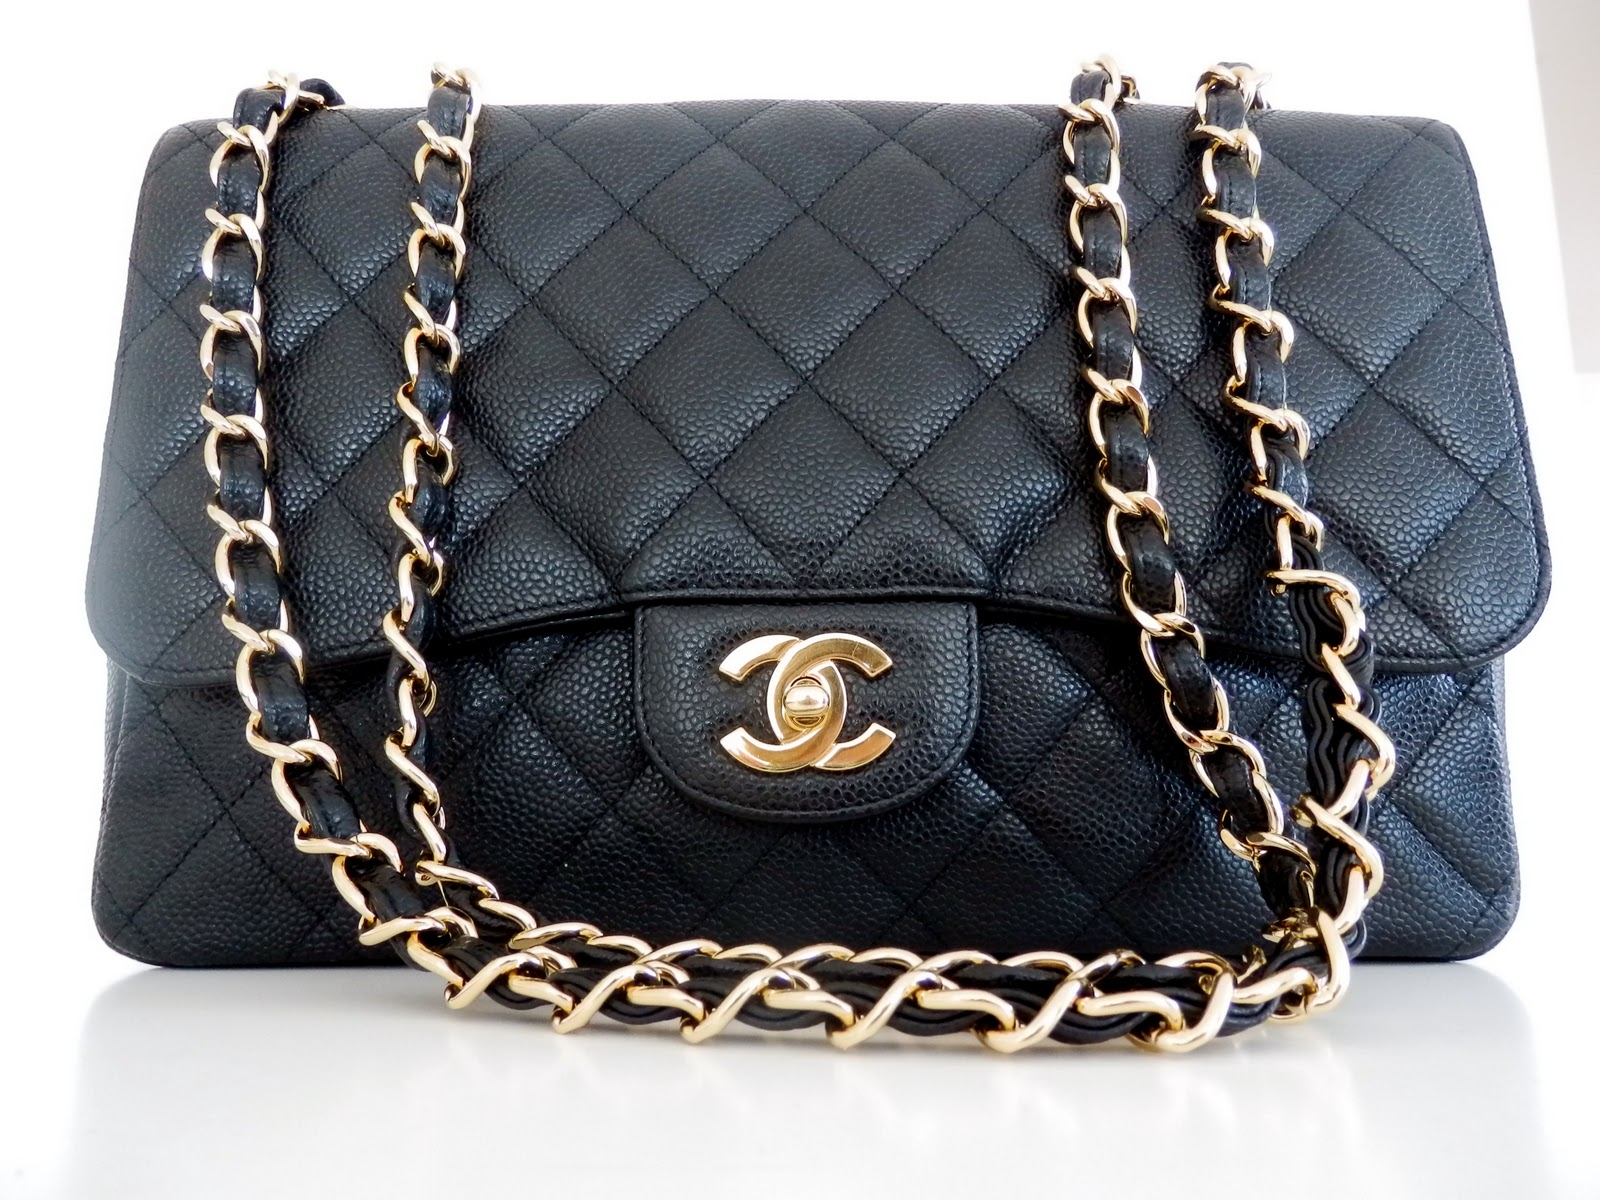 5f492d55c12a What Is A Chanel 2.55 Bag | Stanford Center for Opportunity Policy ...